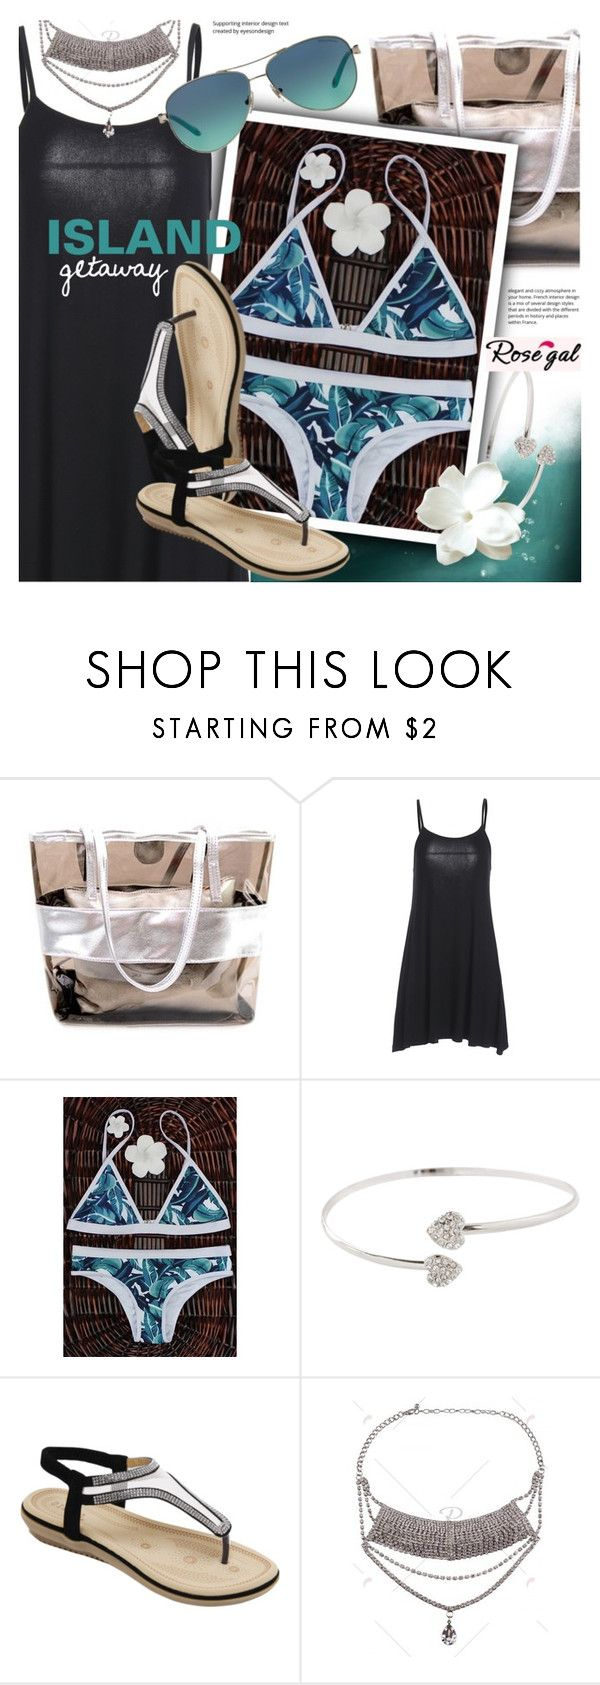 """""""Rosegal chic island getaway in high-neck bikinis"""" by vn1ta ❤ liked on Polyvore featuring Tiffany & Co."""